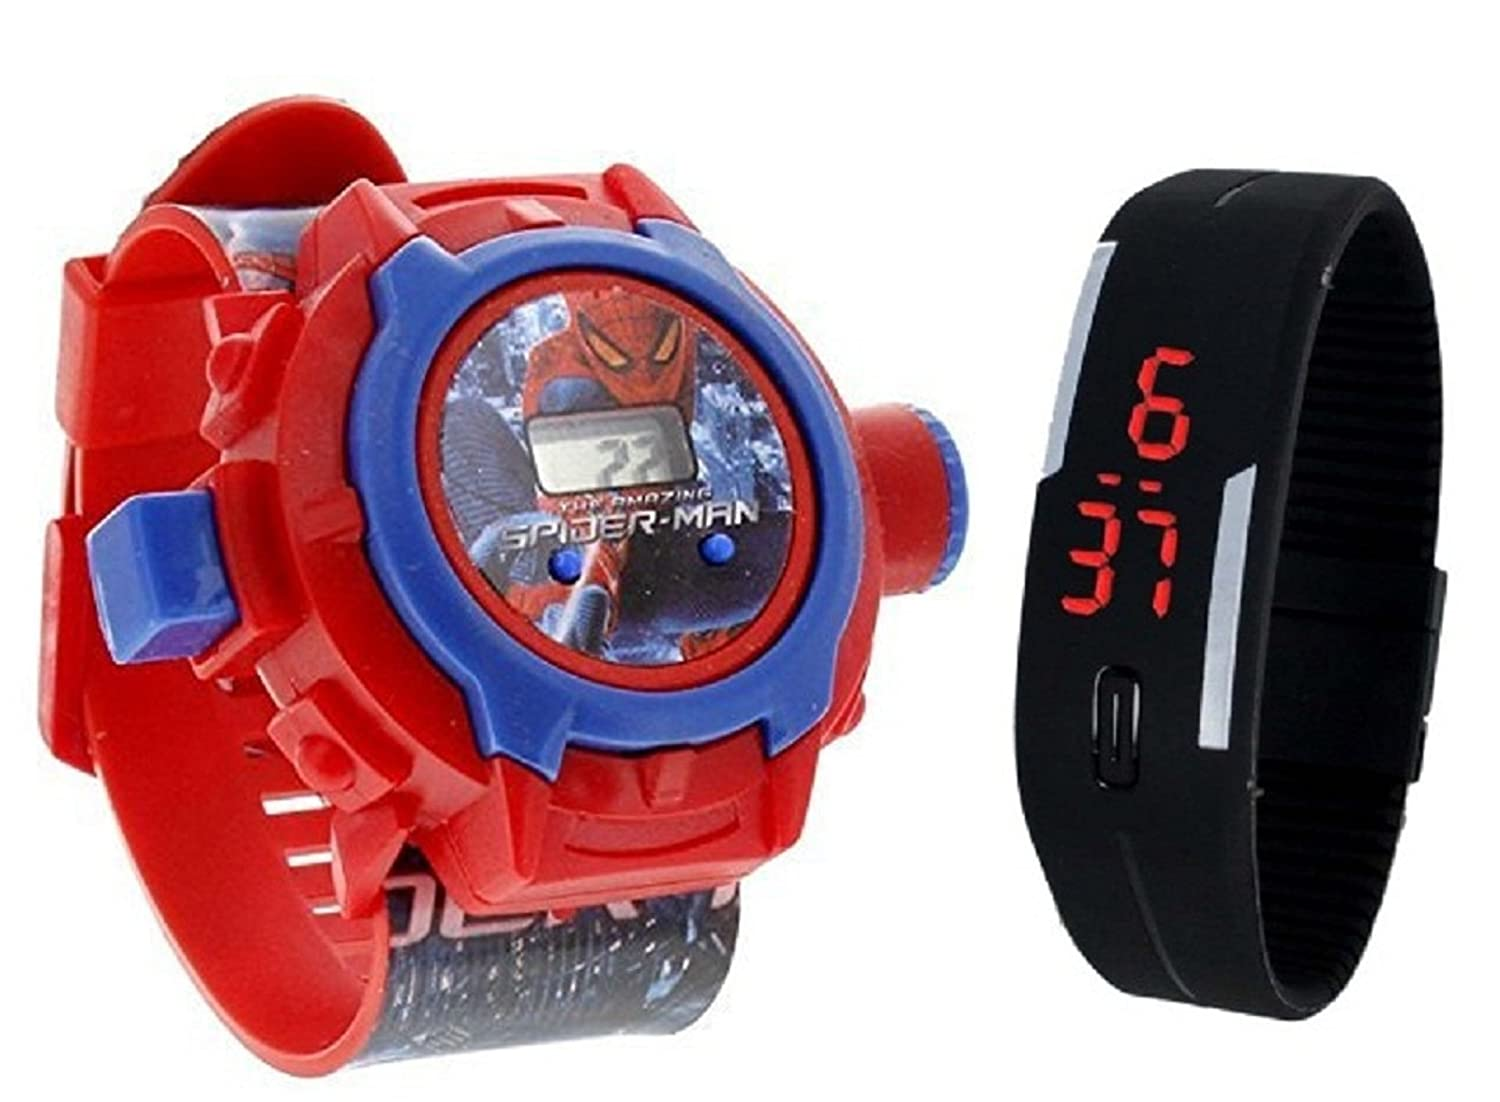 Pappi-Haunt - Quality Assured - Kids Special Toys - Pack of 2 -Spiderman Projector Band Watch + Jelly Slim Black Digital Led Band Watch for Kids, Children, ...